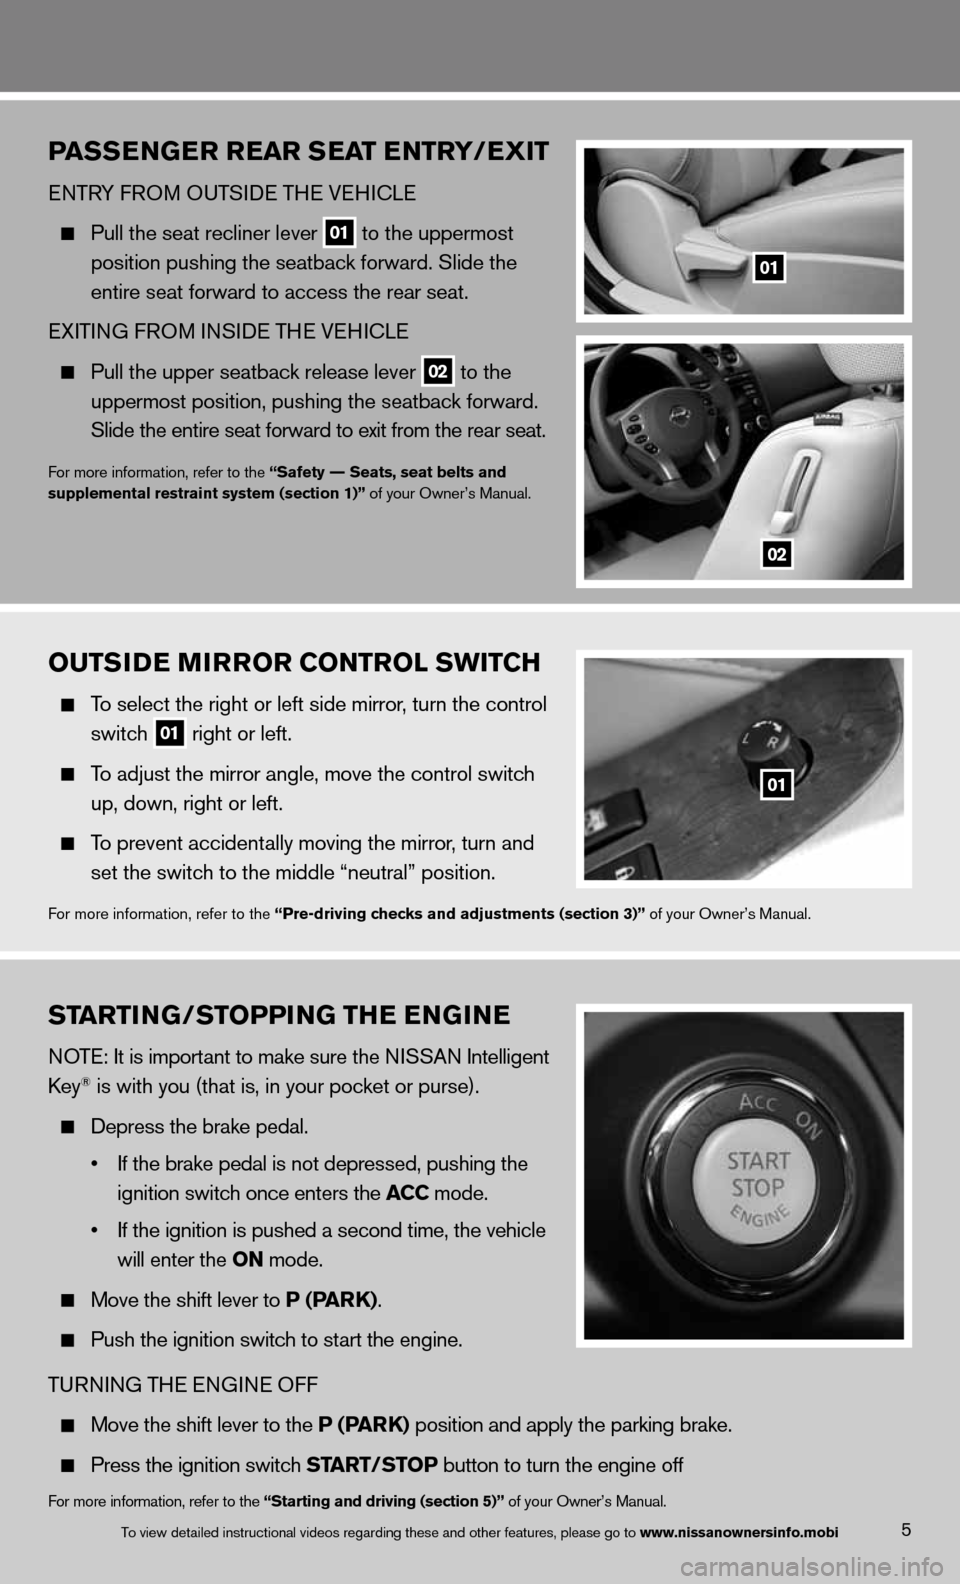 nissan altima coupe 2013 d32 4 g quick reference guide rh carmanualsonline info Training Quick Reference Guides Quick Reference Guide Clip Art